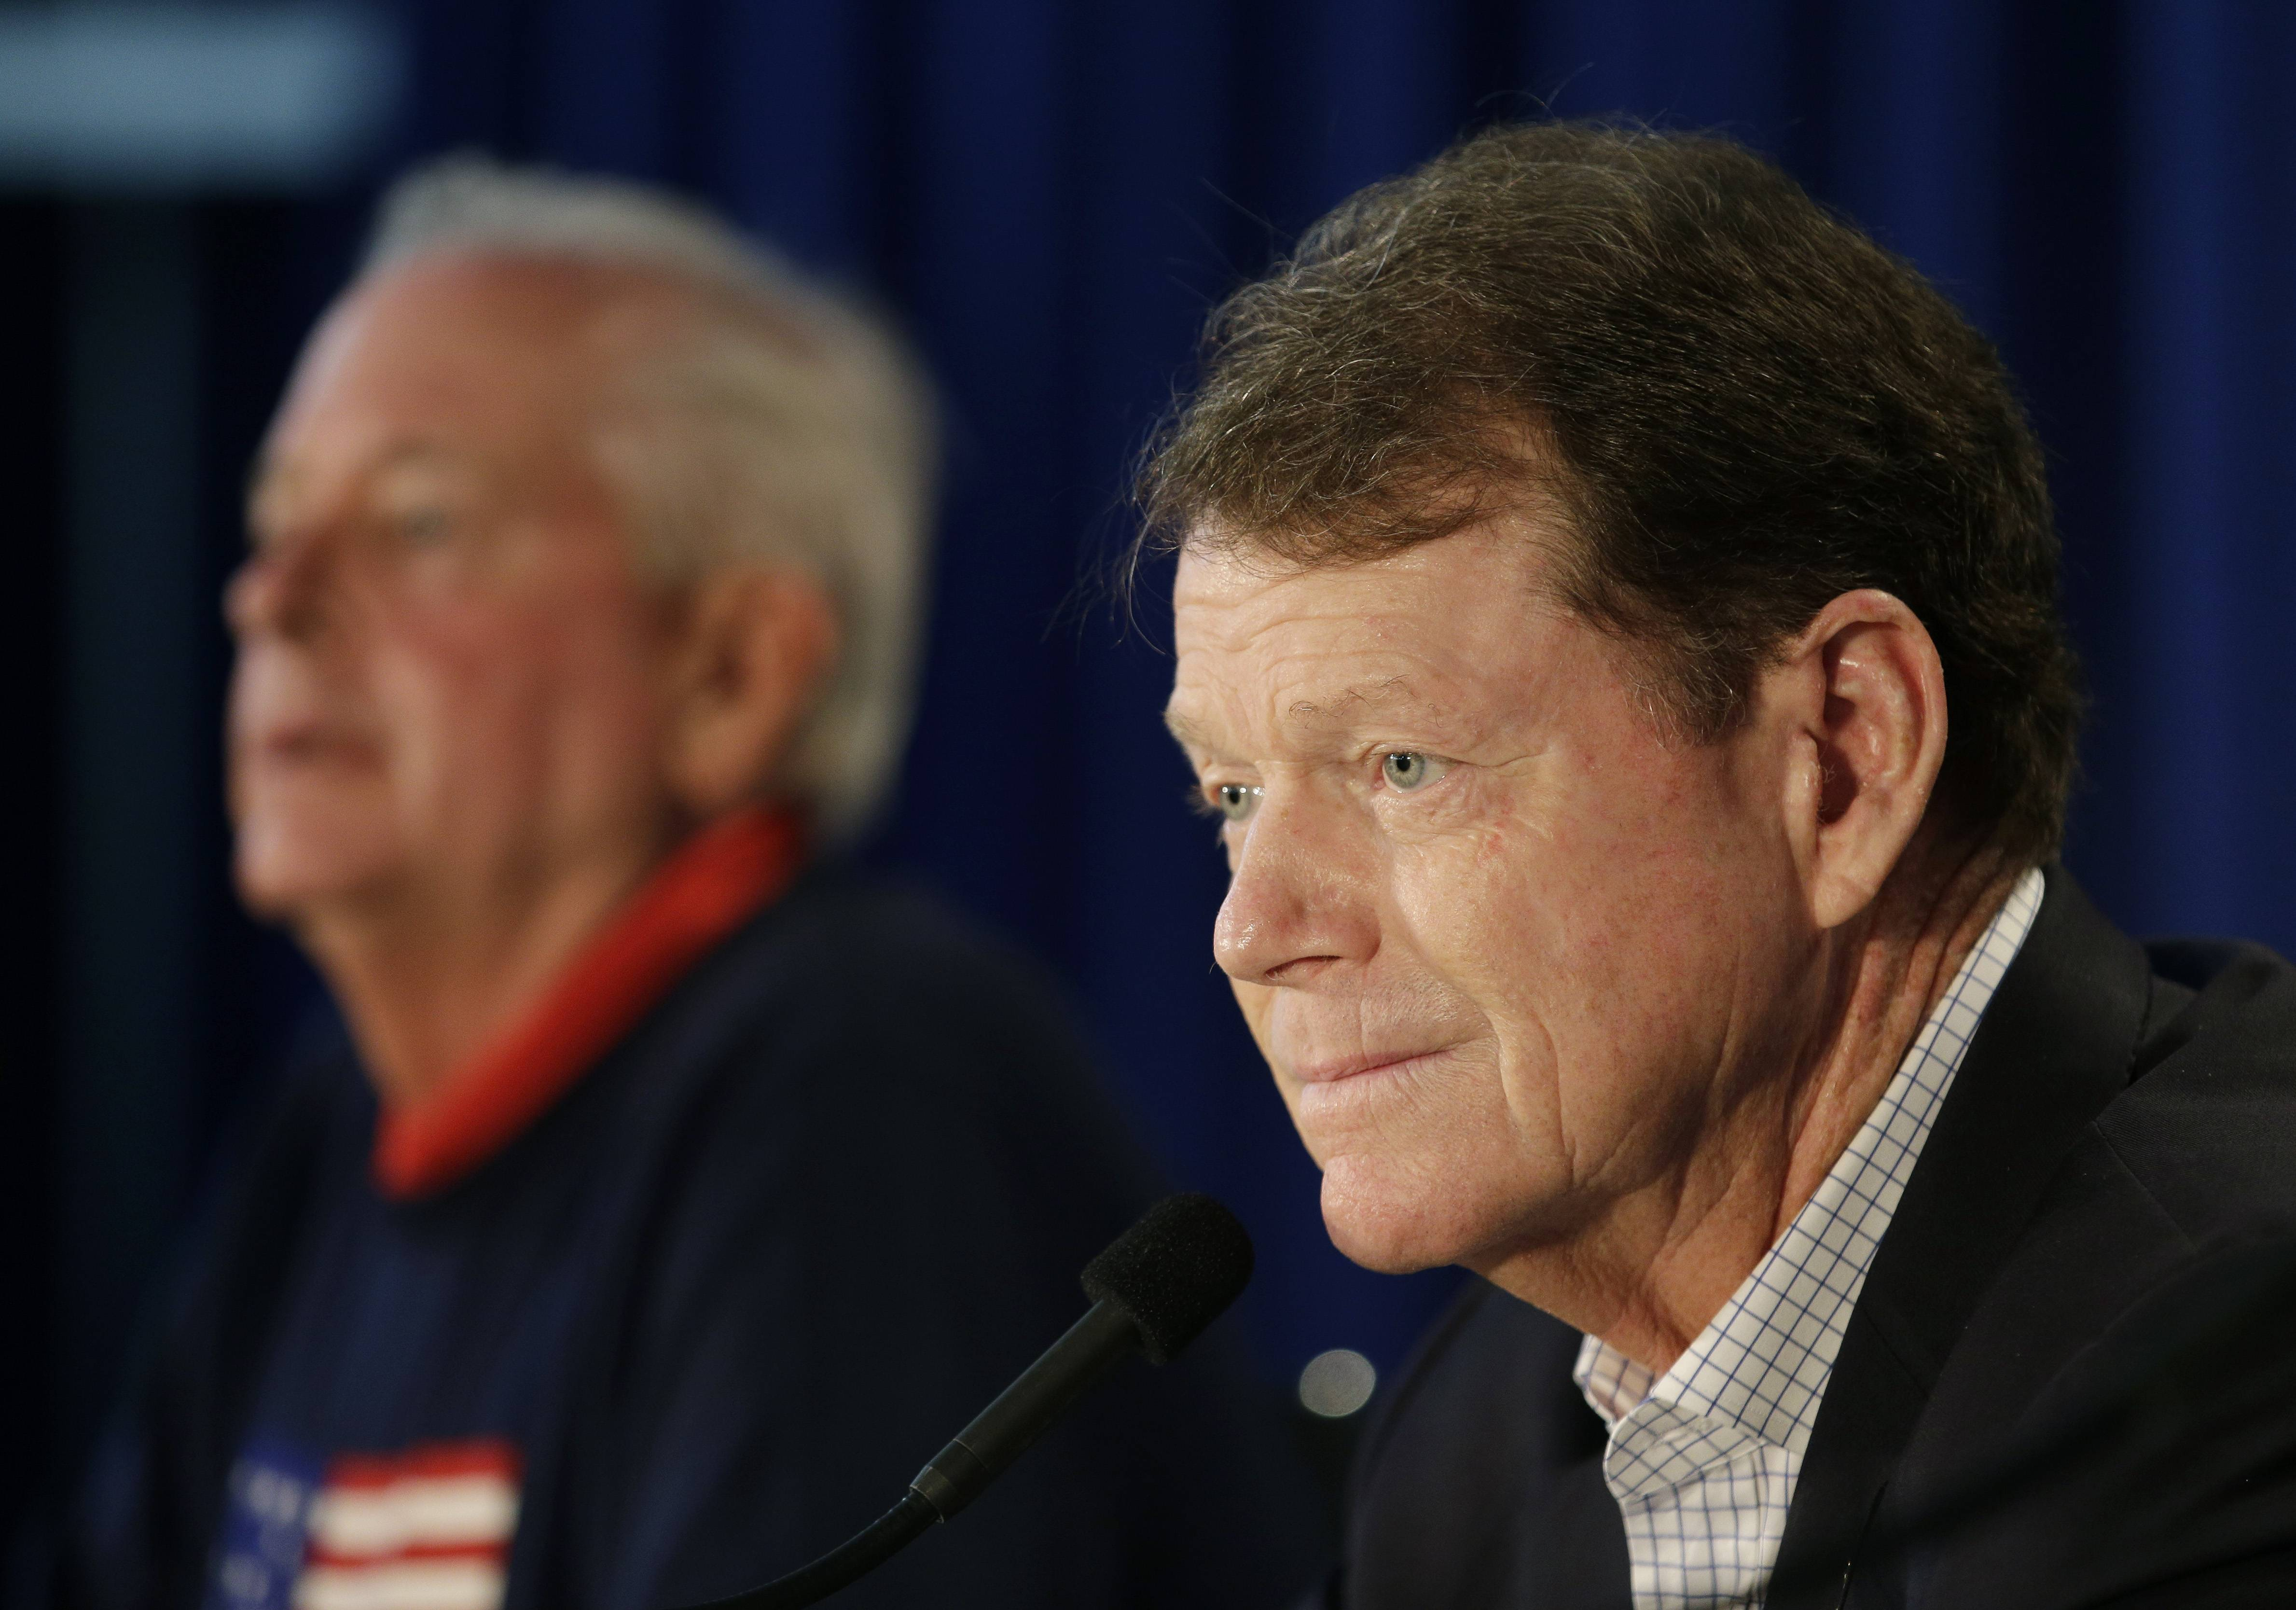 US Ryder Cup Captain Tom Watson, right, speaks at a news conference Monday at Valhalla Golf Club in Louisville, Ky. At left is PGA of America president Ted Bishop. Watson said he won't rule out having Woods on the team.